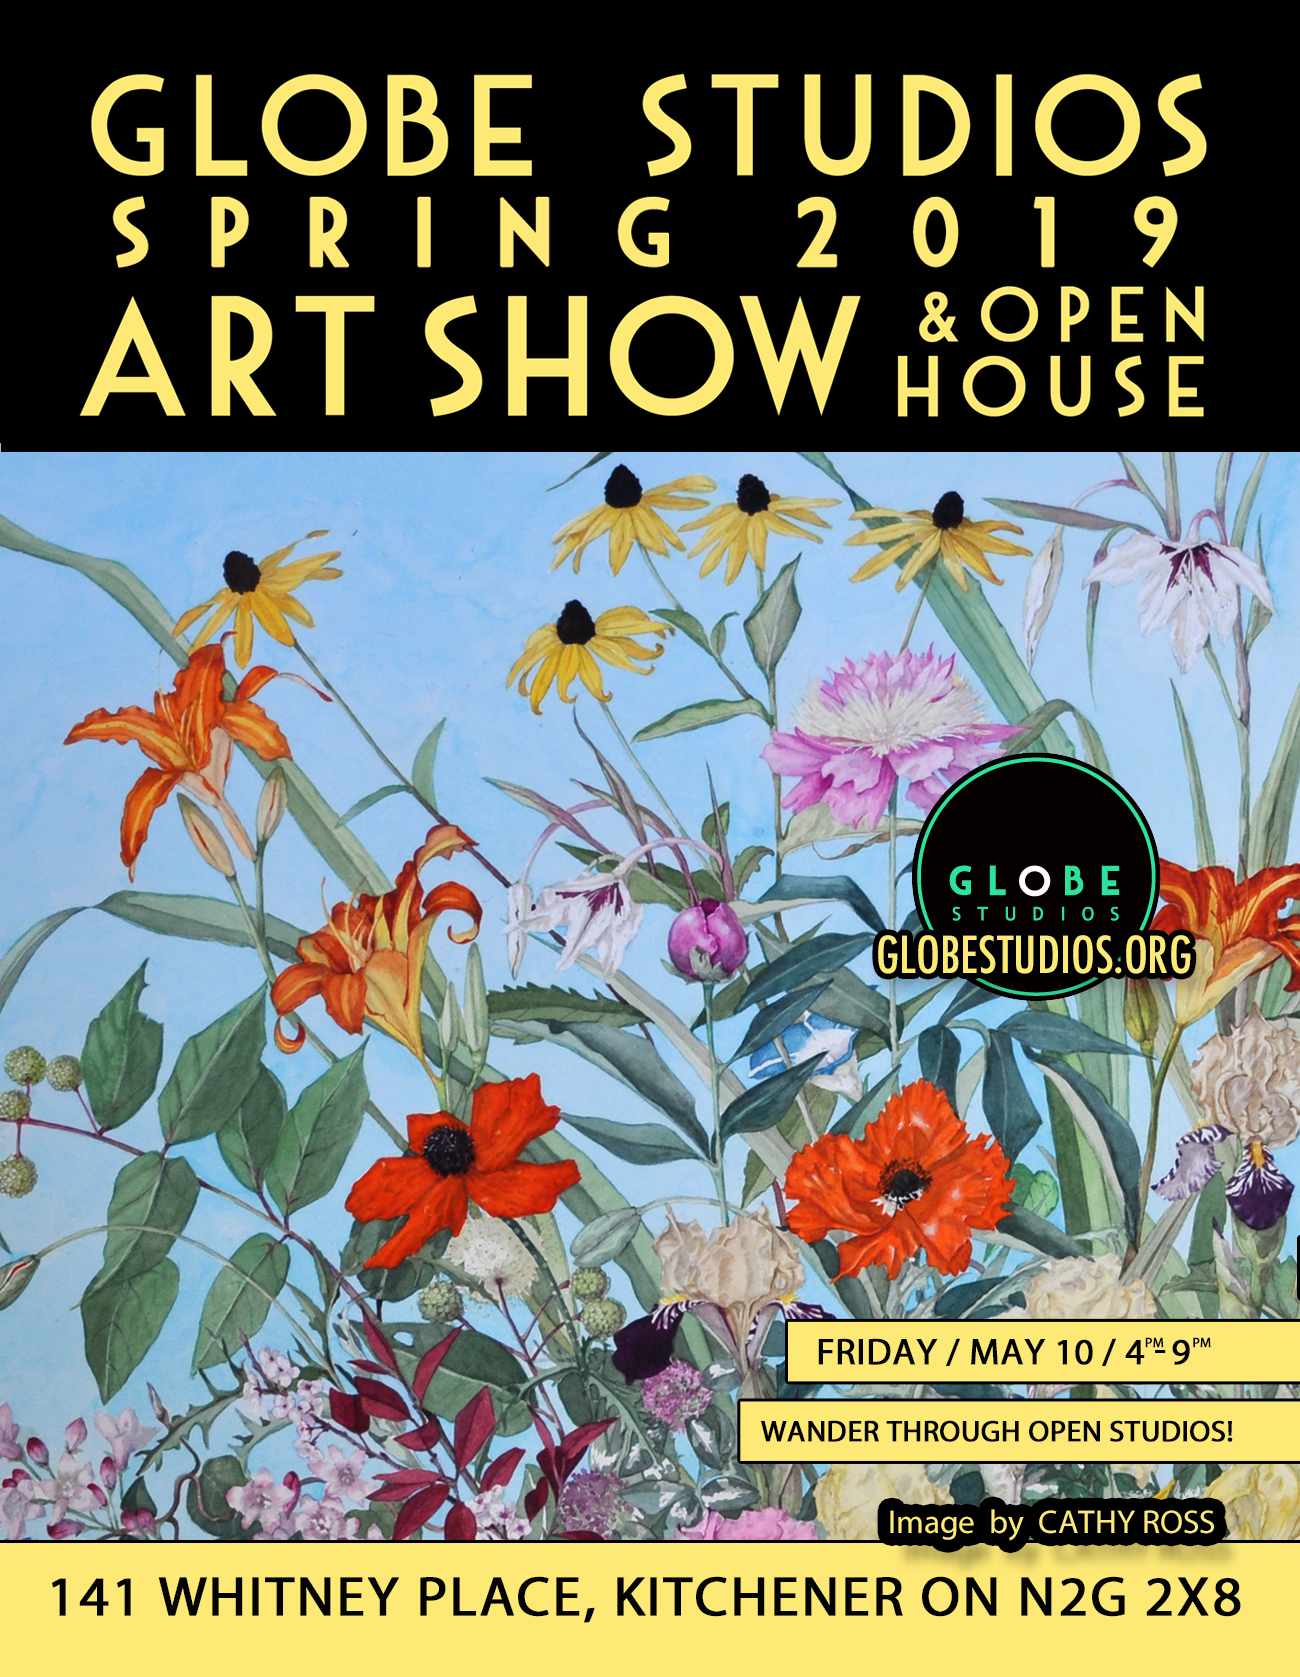 Globe Studios Spring 2019 Art Show and Open House - Friday, May 10th 4-9 p.m.141 Whitney Place, Kitchener ON N2G2X8